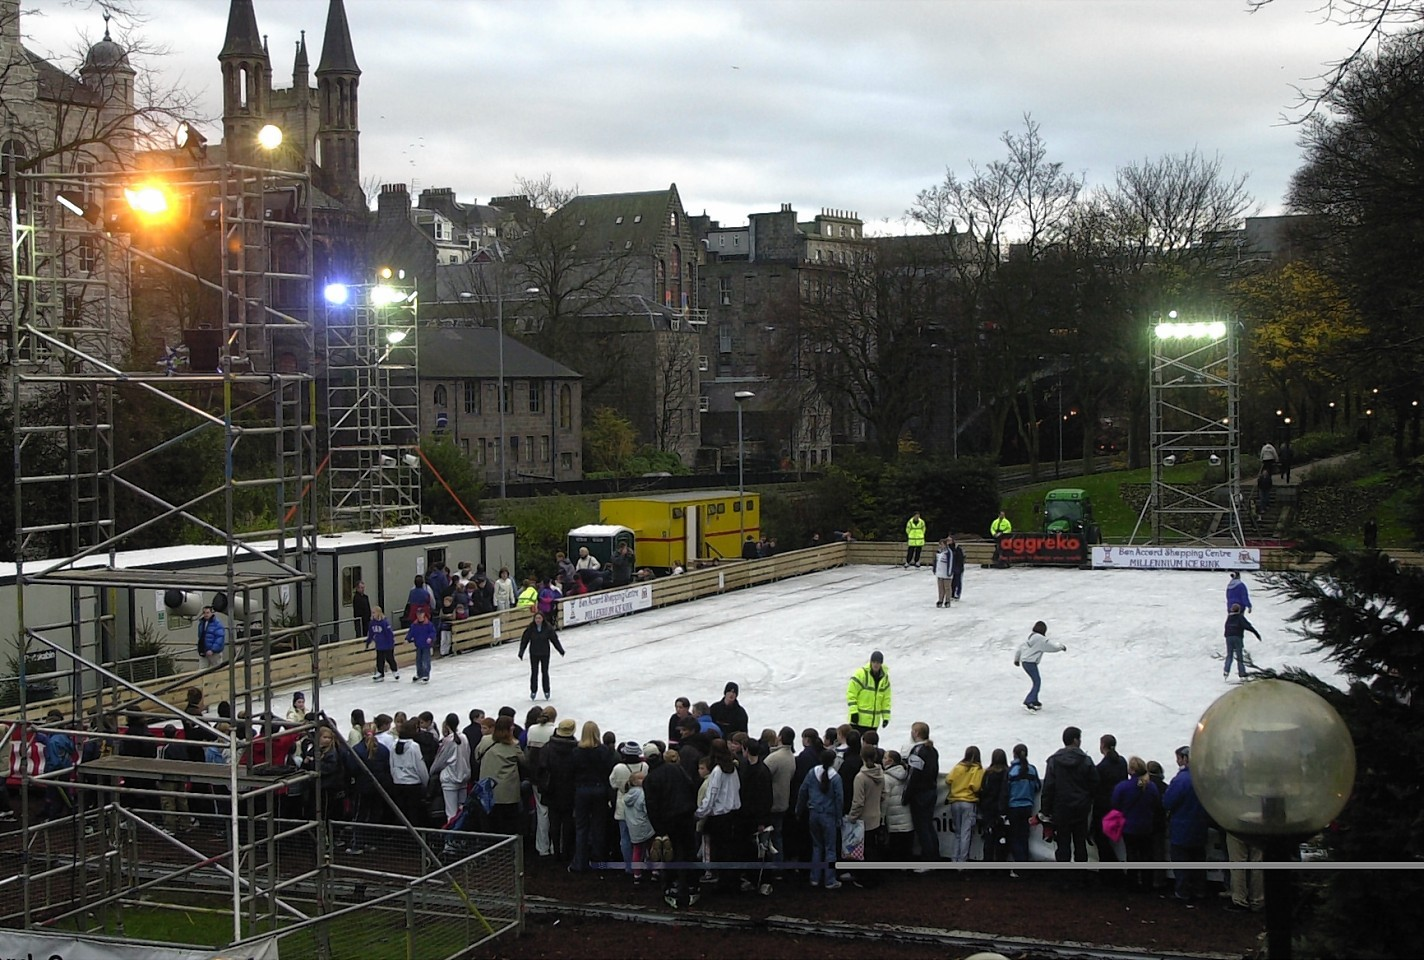 The Union Terrace Gardens ice rink